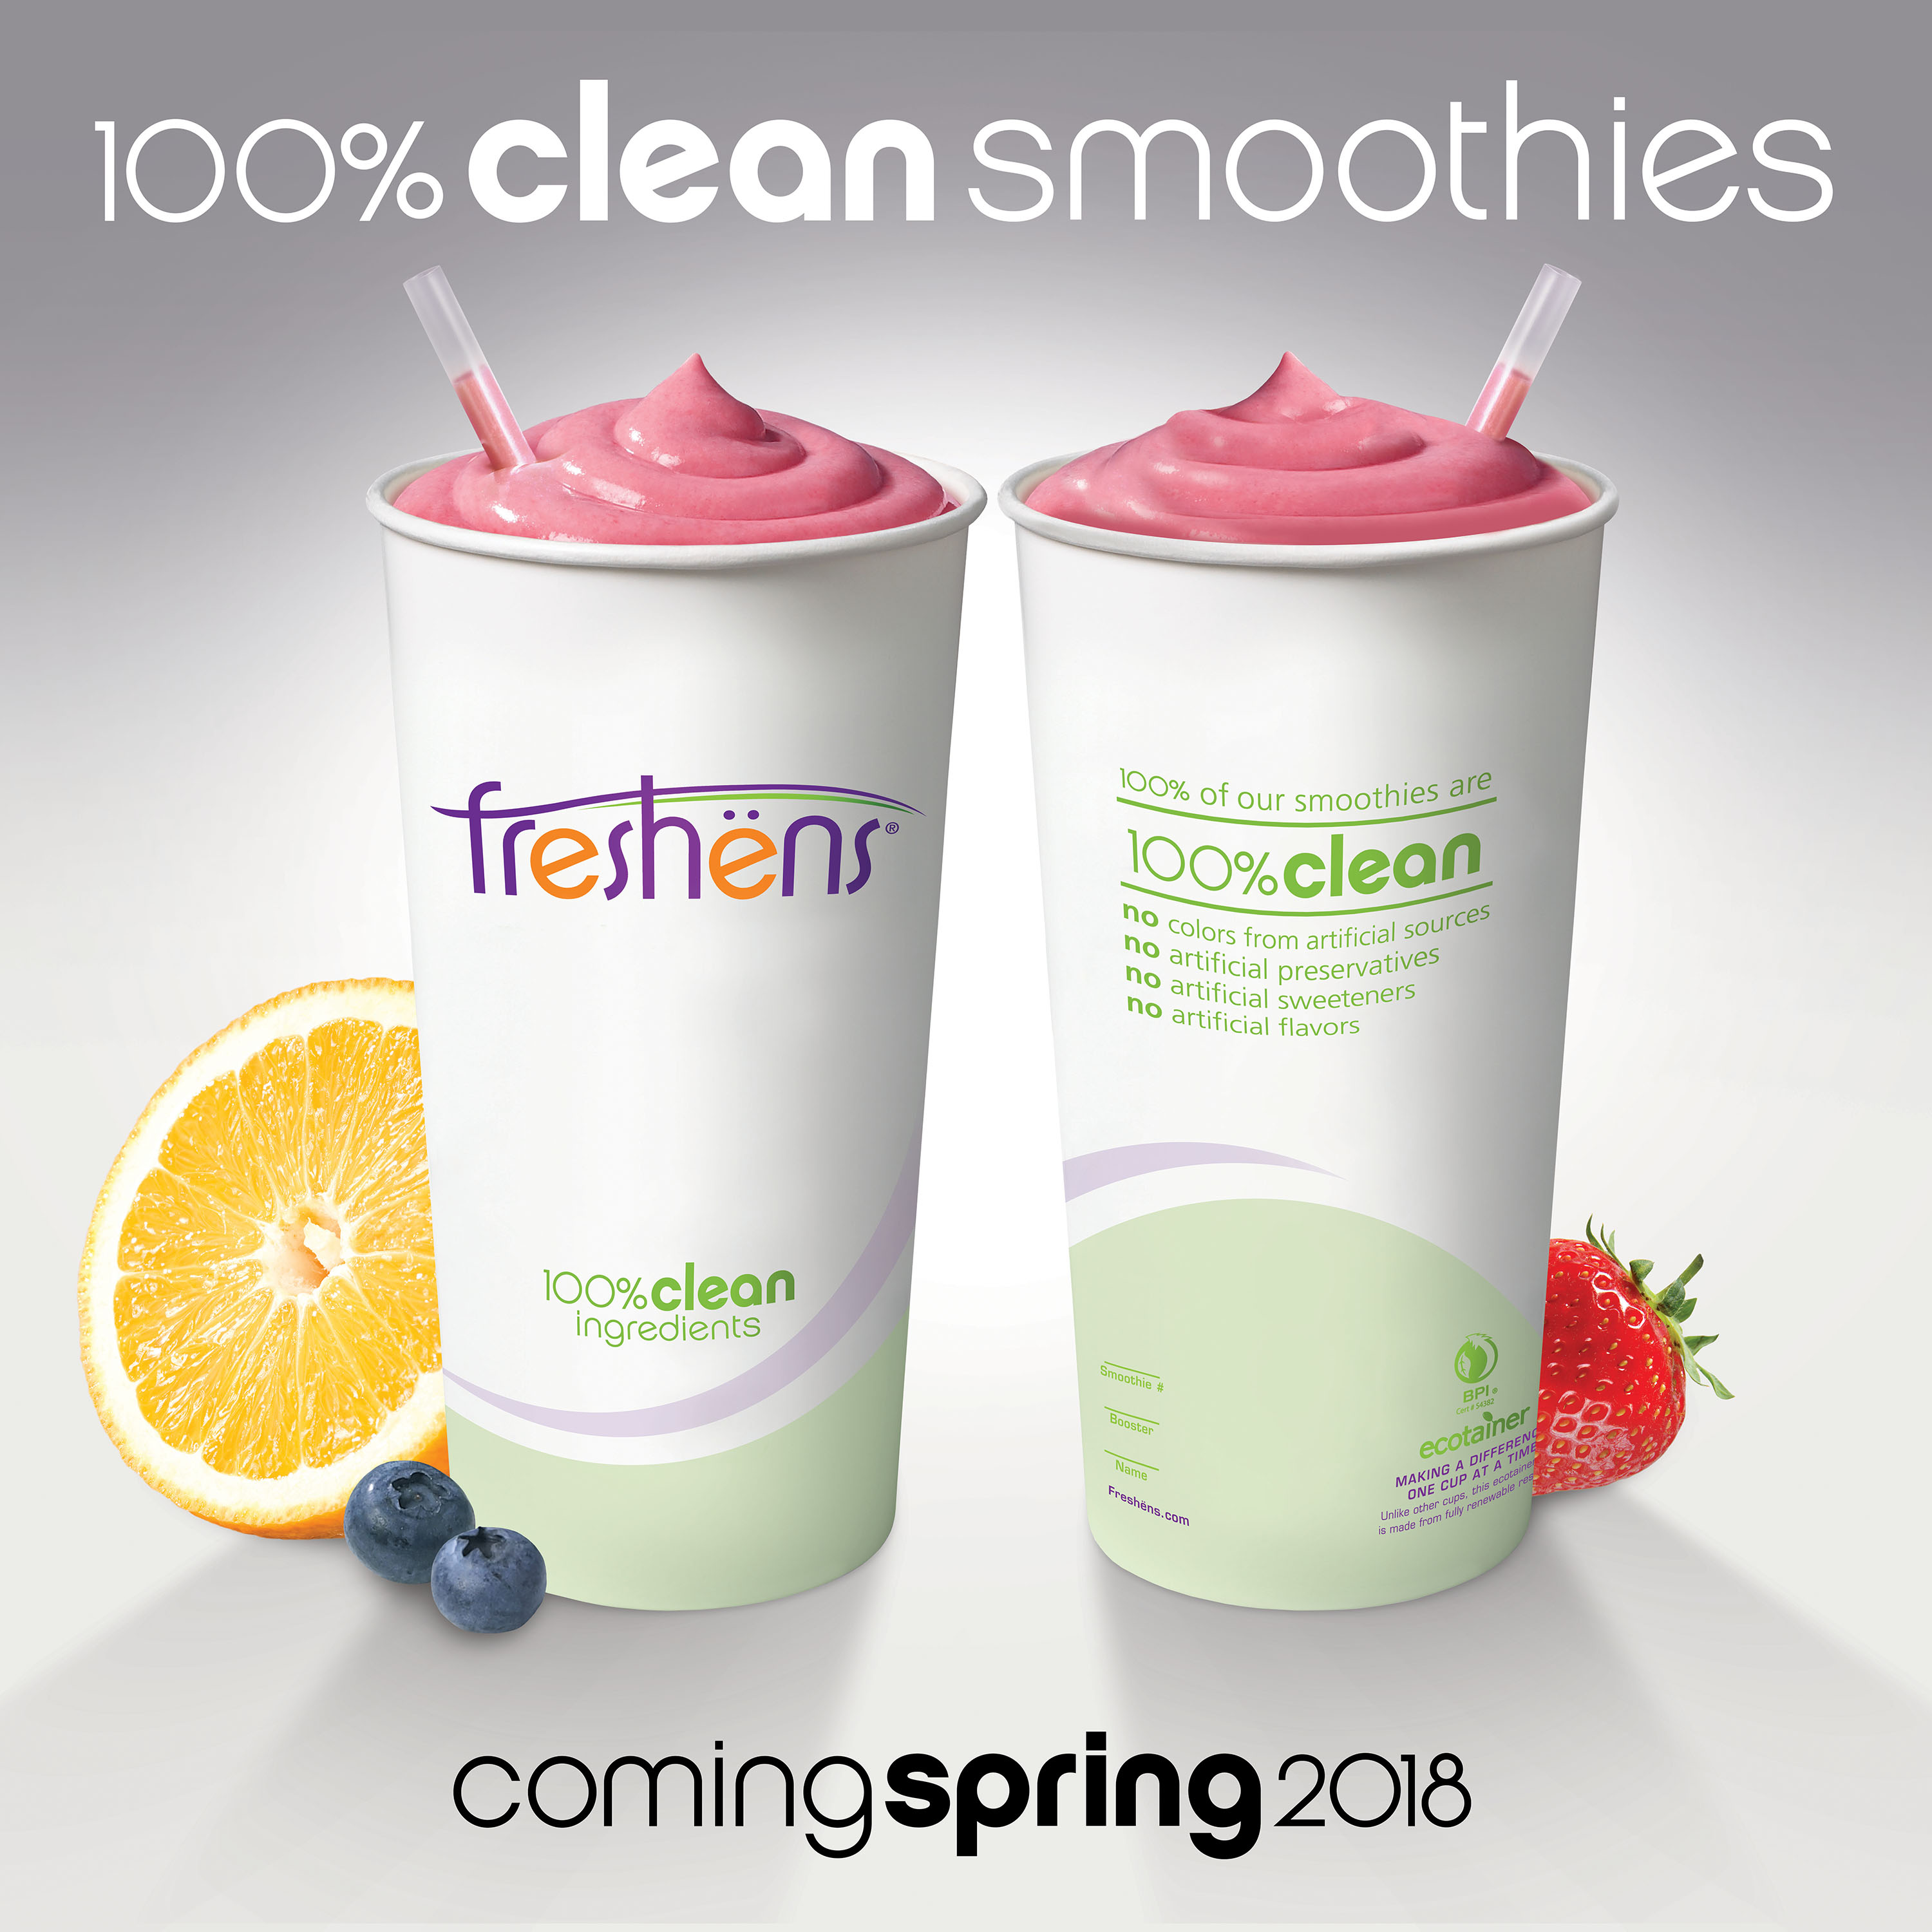 100% of Freshens Smoothies will be 100% Clean This Spring! No artificial preservatives, sweeteners, flavors, or colors from artificial sources. 100% Gluten Friendly, 100% Non-GMO Fruits & Vegetables, 100% Vegan Raw Sugar, 100% Free from Growth Hormones